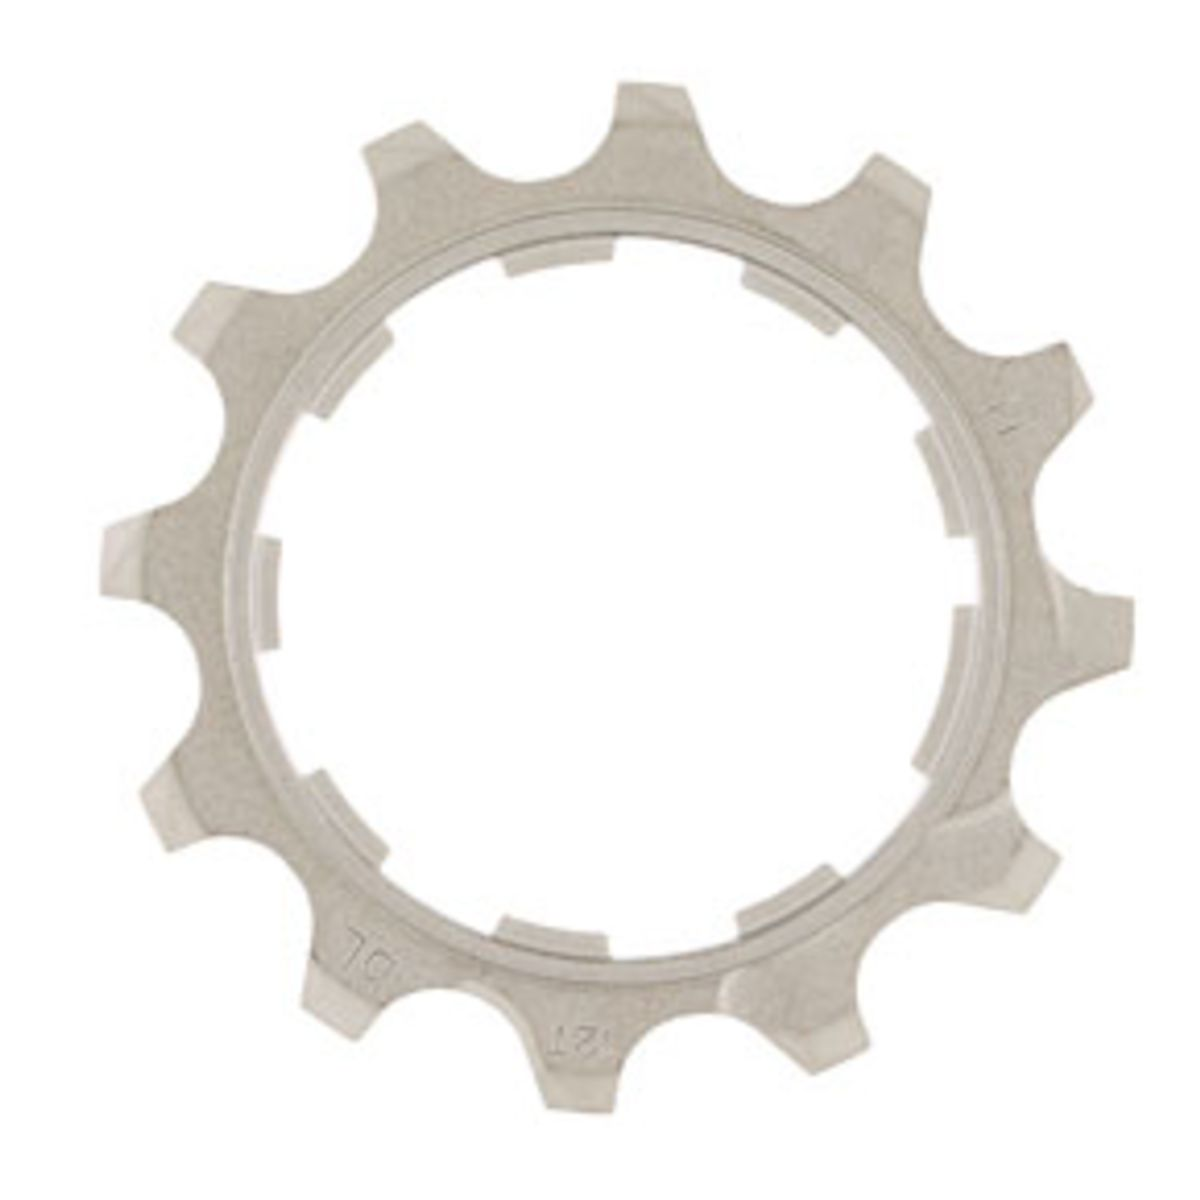 XT CS-M771 10-speed, 12-tooth replacement sprocket